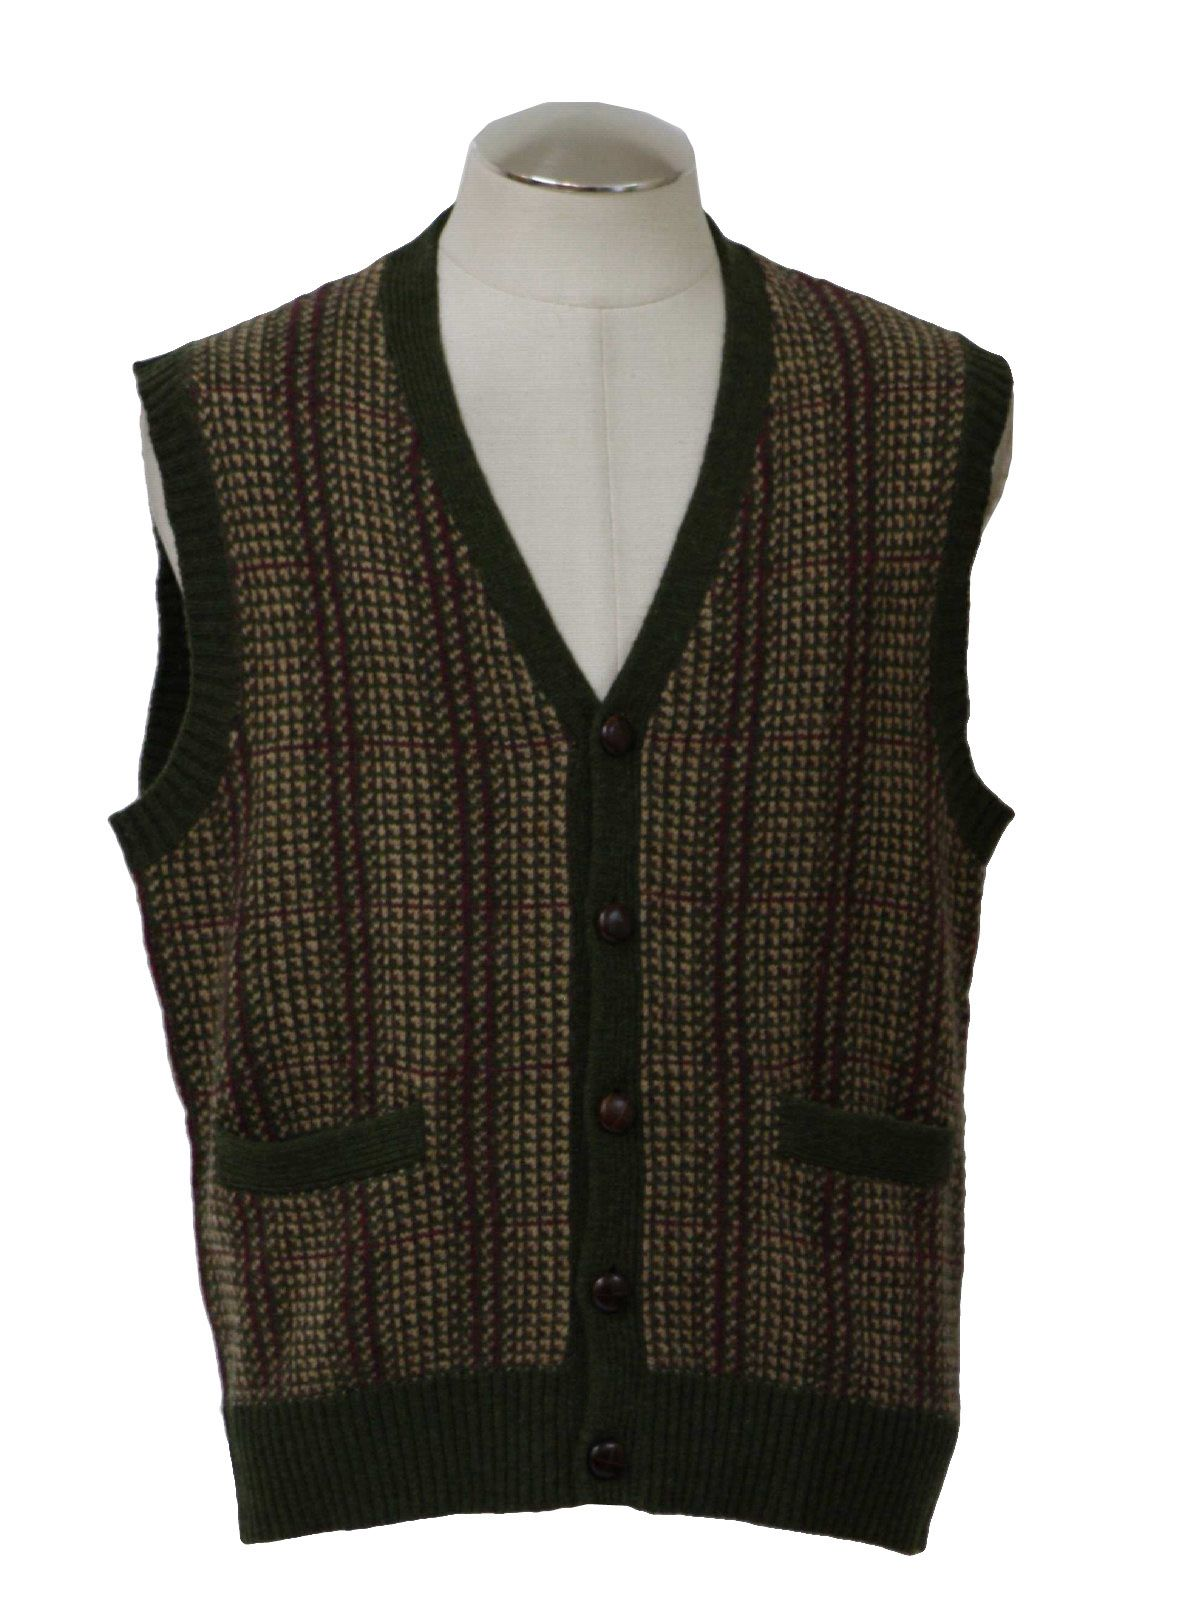 button up sweater vests 1950's | ... sweater vest with leather ...